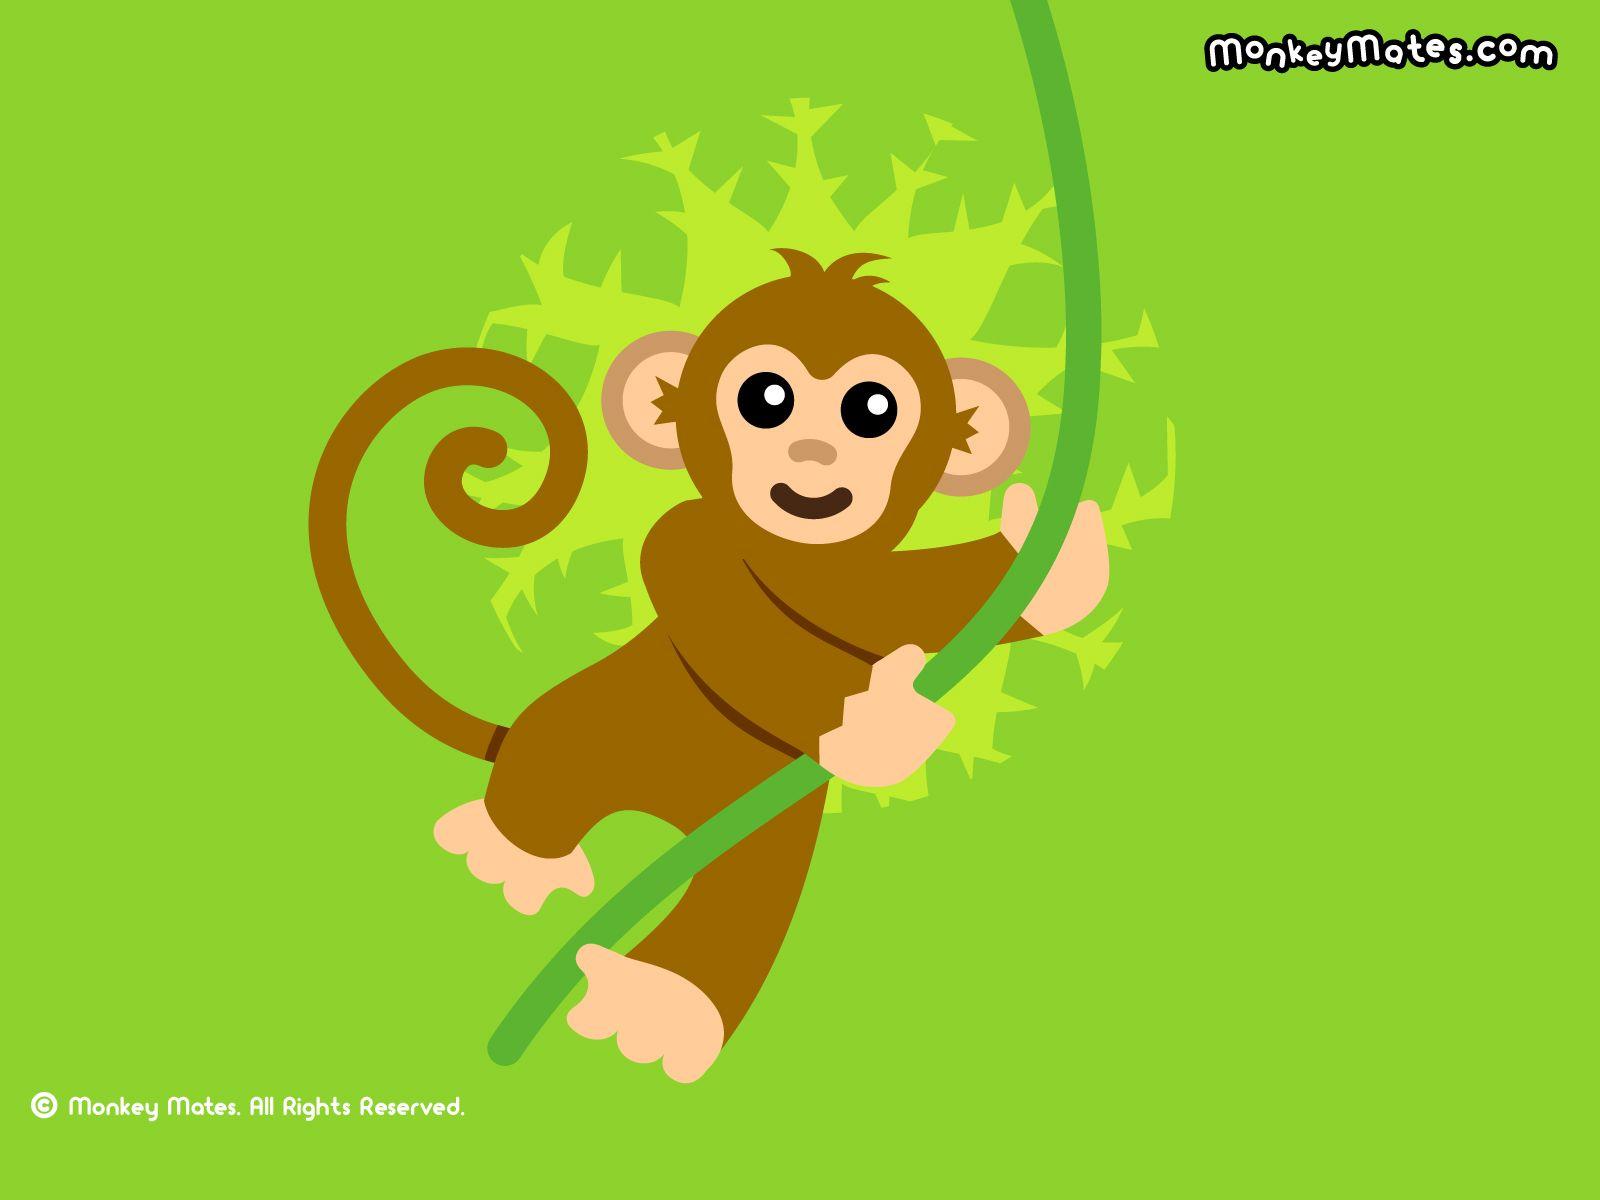 monkey cartoon wallpaper - photo #1